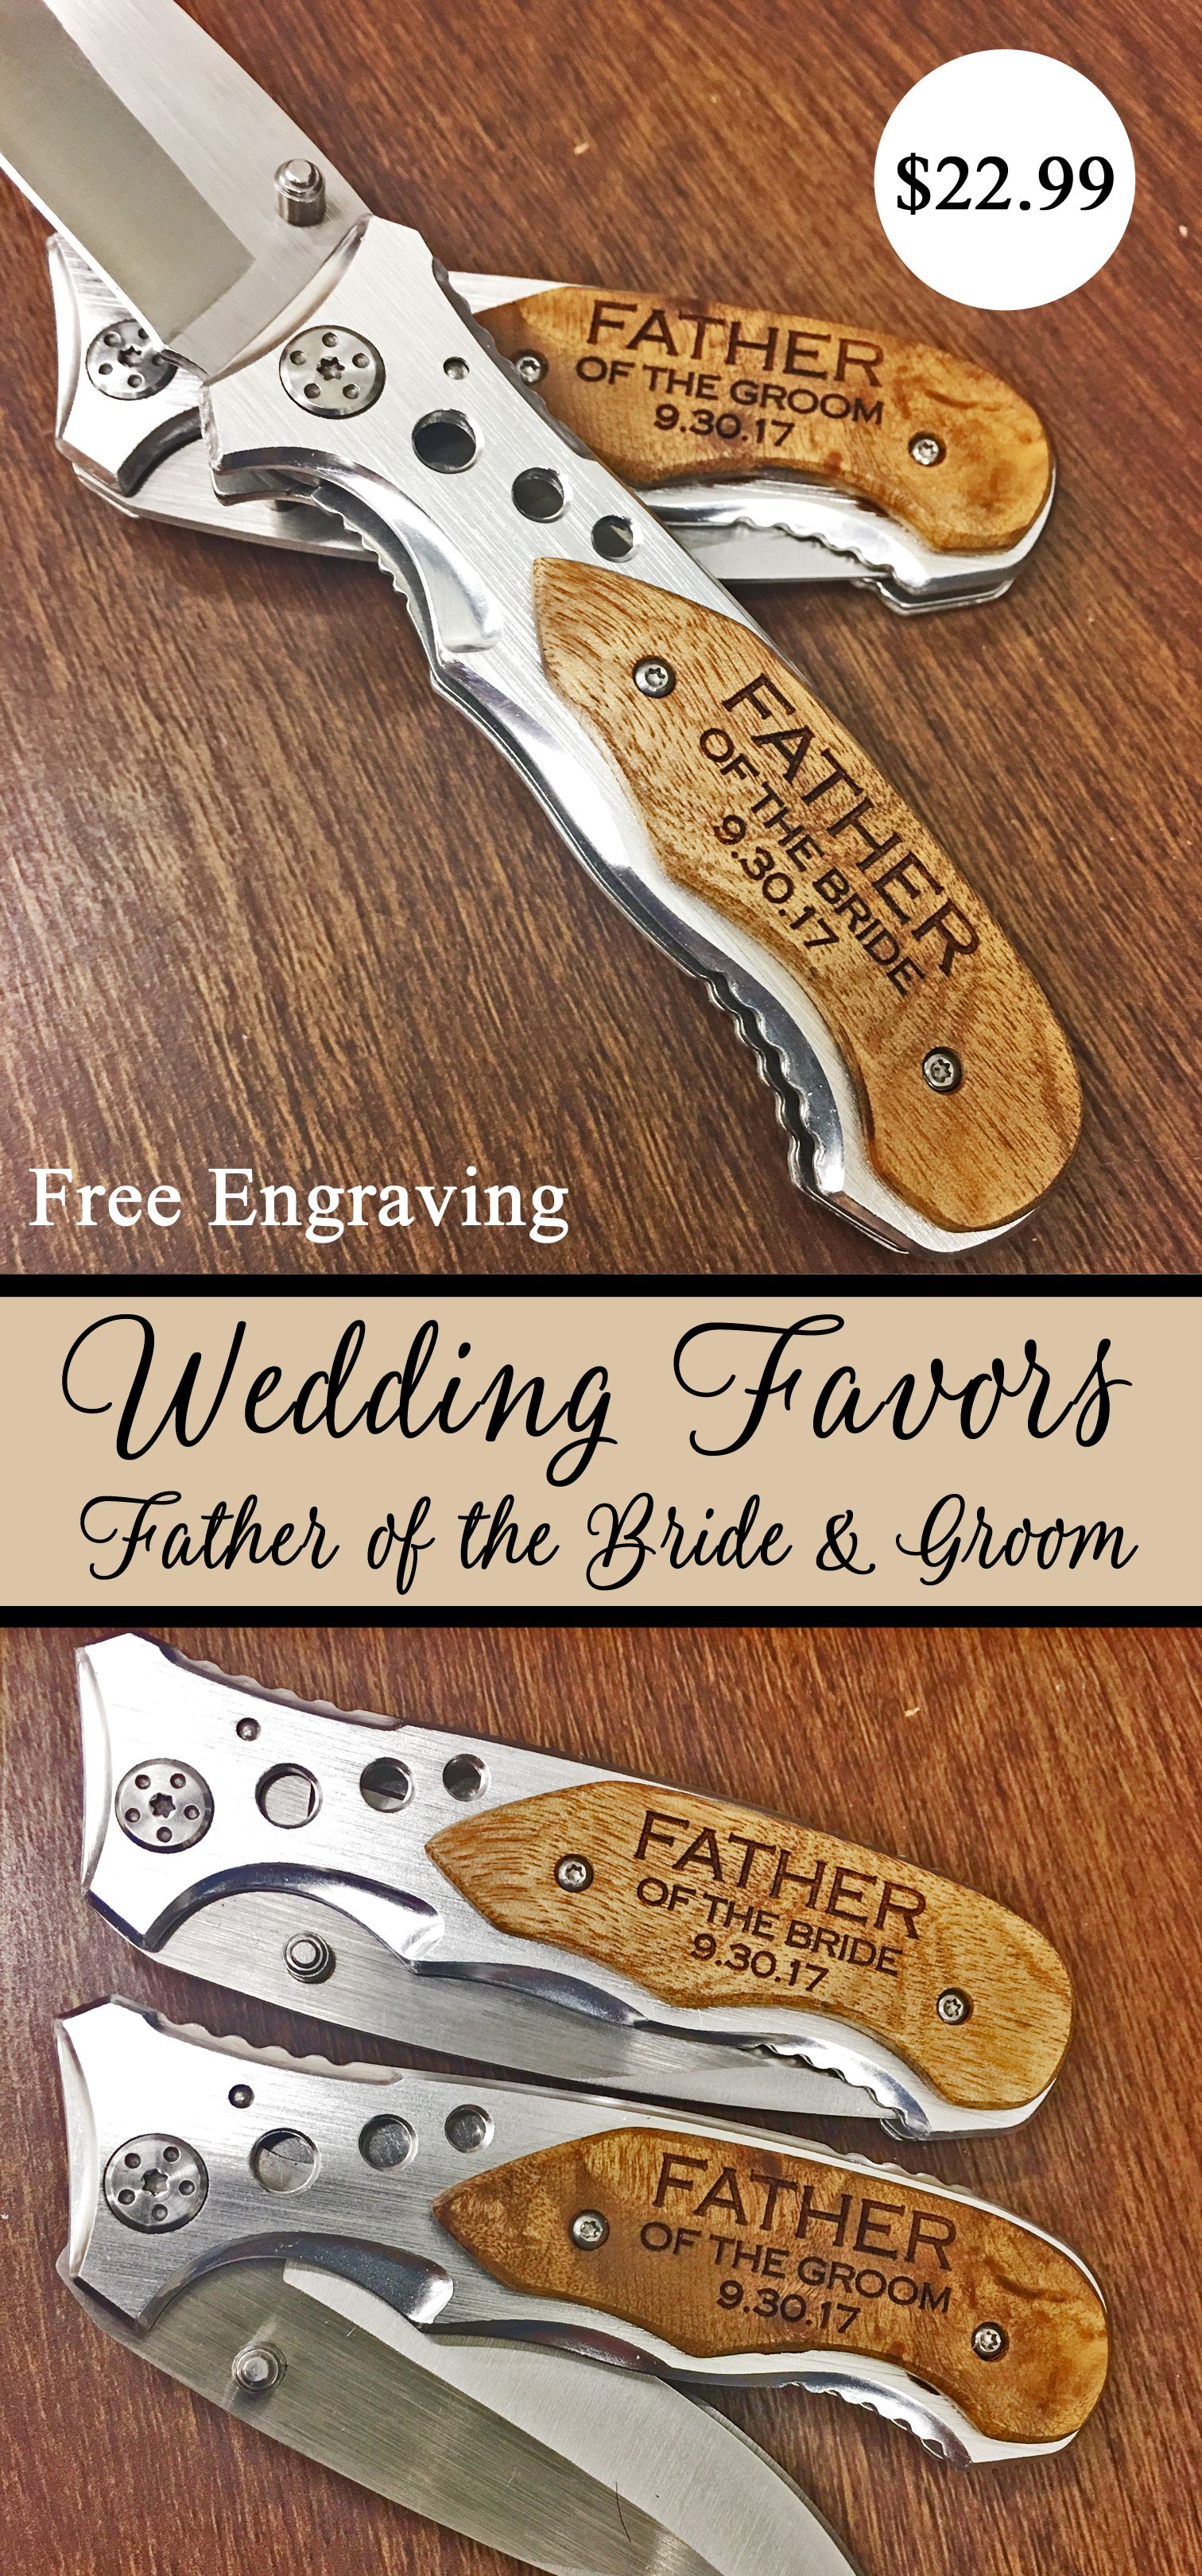 Father of the bride groom pocket knife wedding gifts